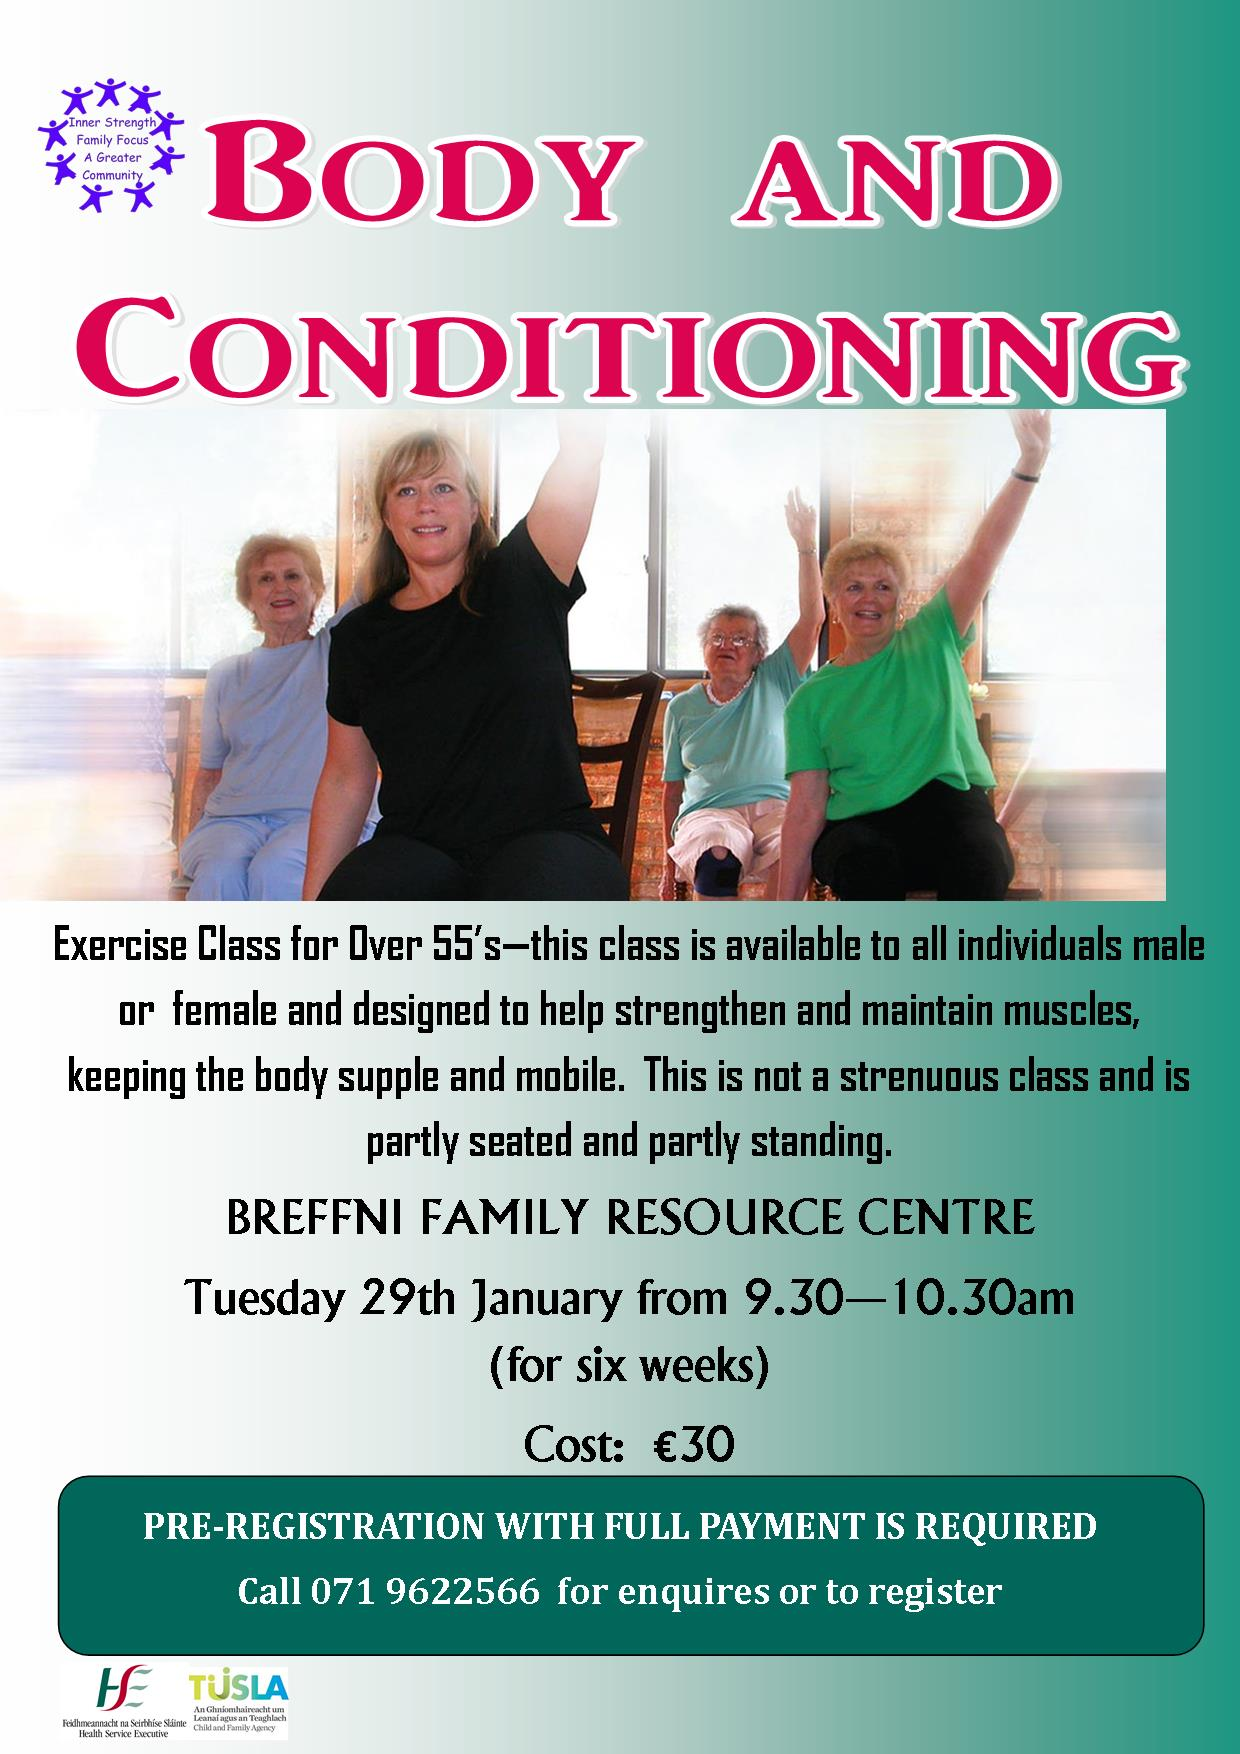 MyCarrick Event - Breffni Family Resource Centre - Body & Conditioning Exercise Classes